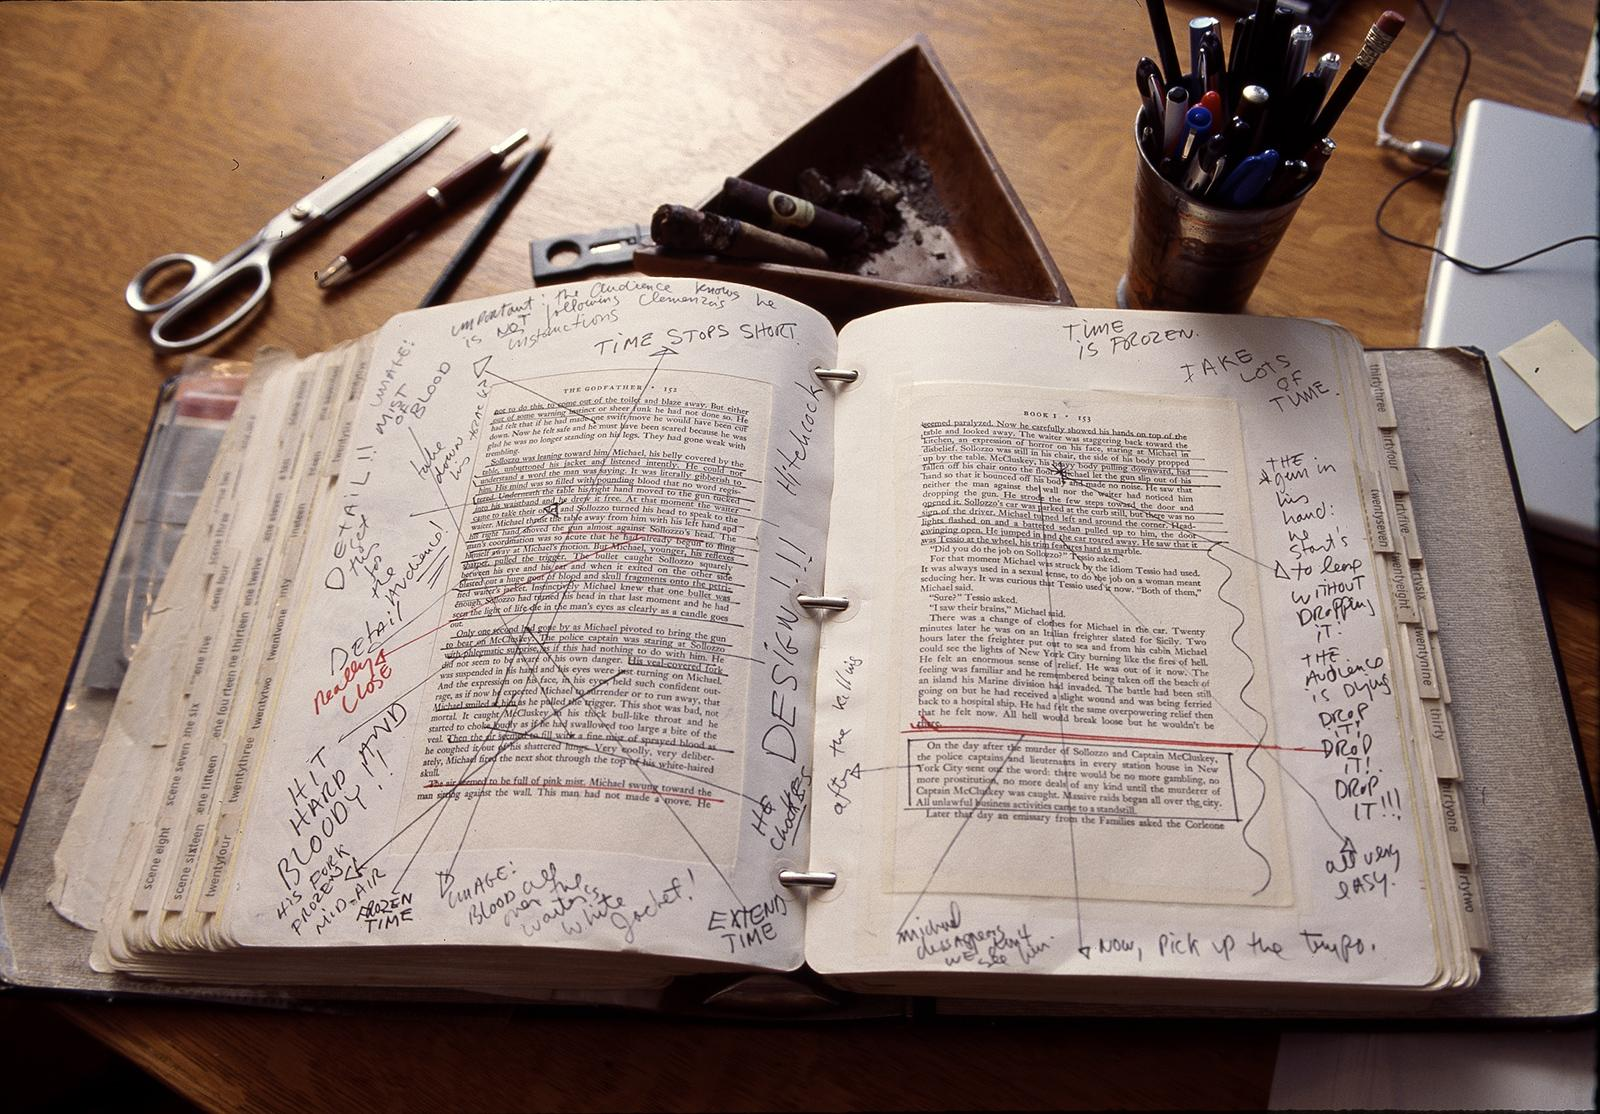 To plan the film, Coppola made extensive notes in a copy of Puzo's novel.